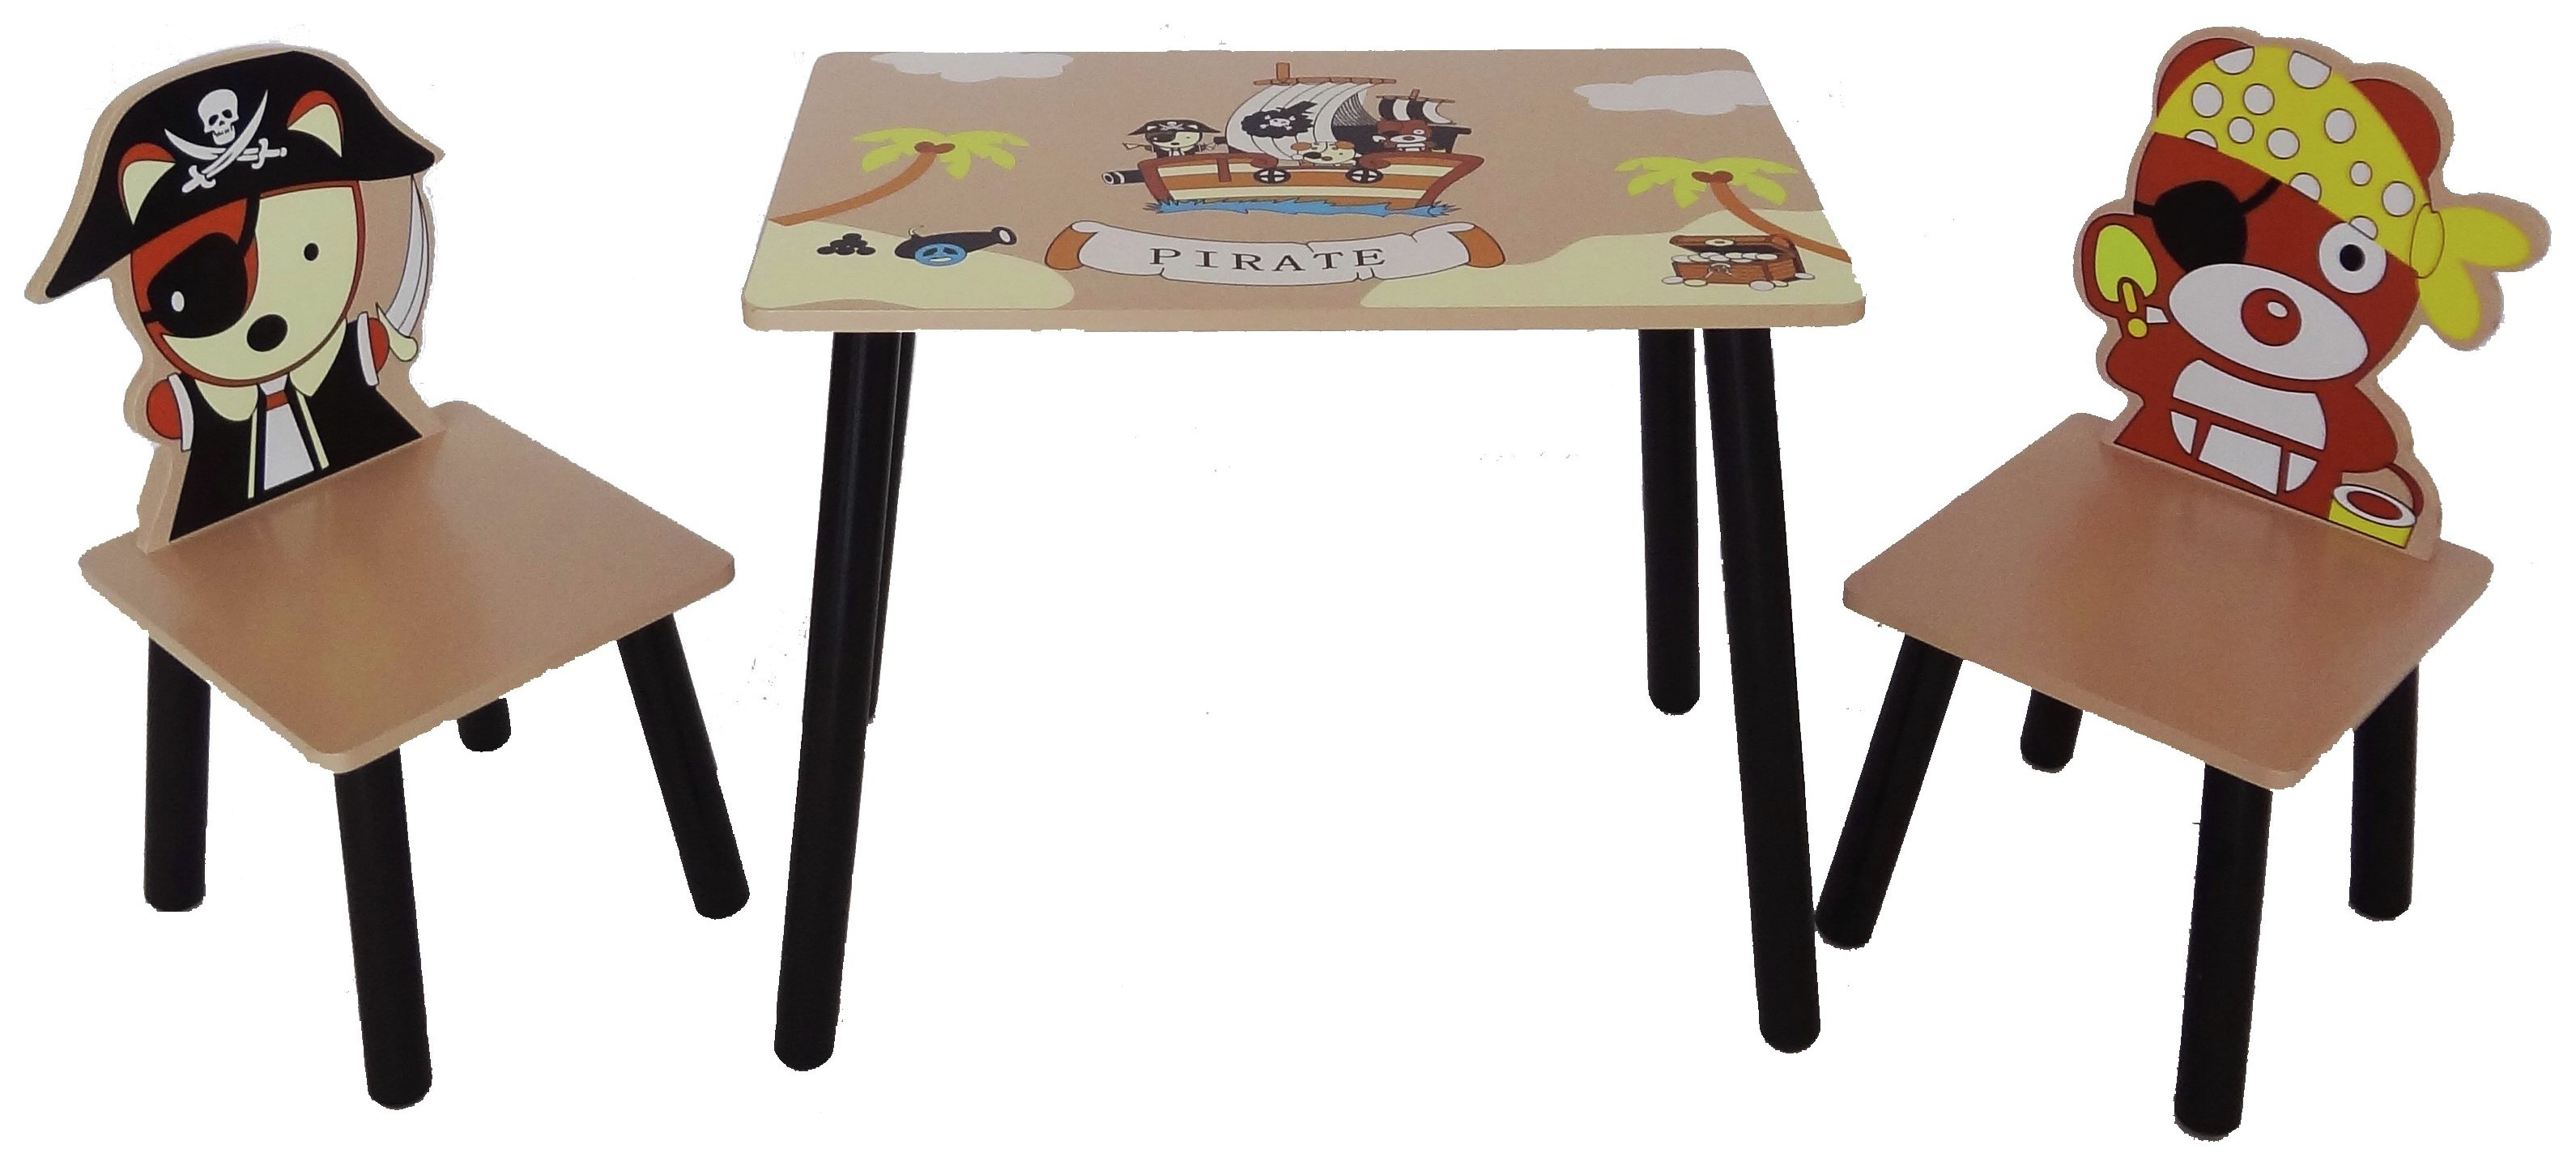 Image of Kiddi Style Pirate Theme Table and 2 Chairs